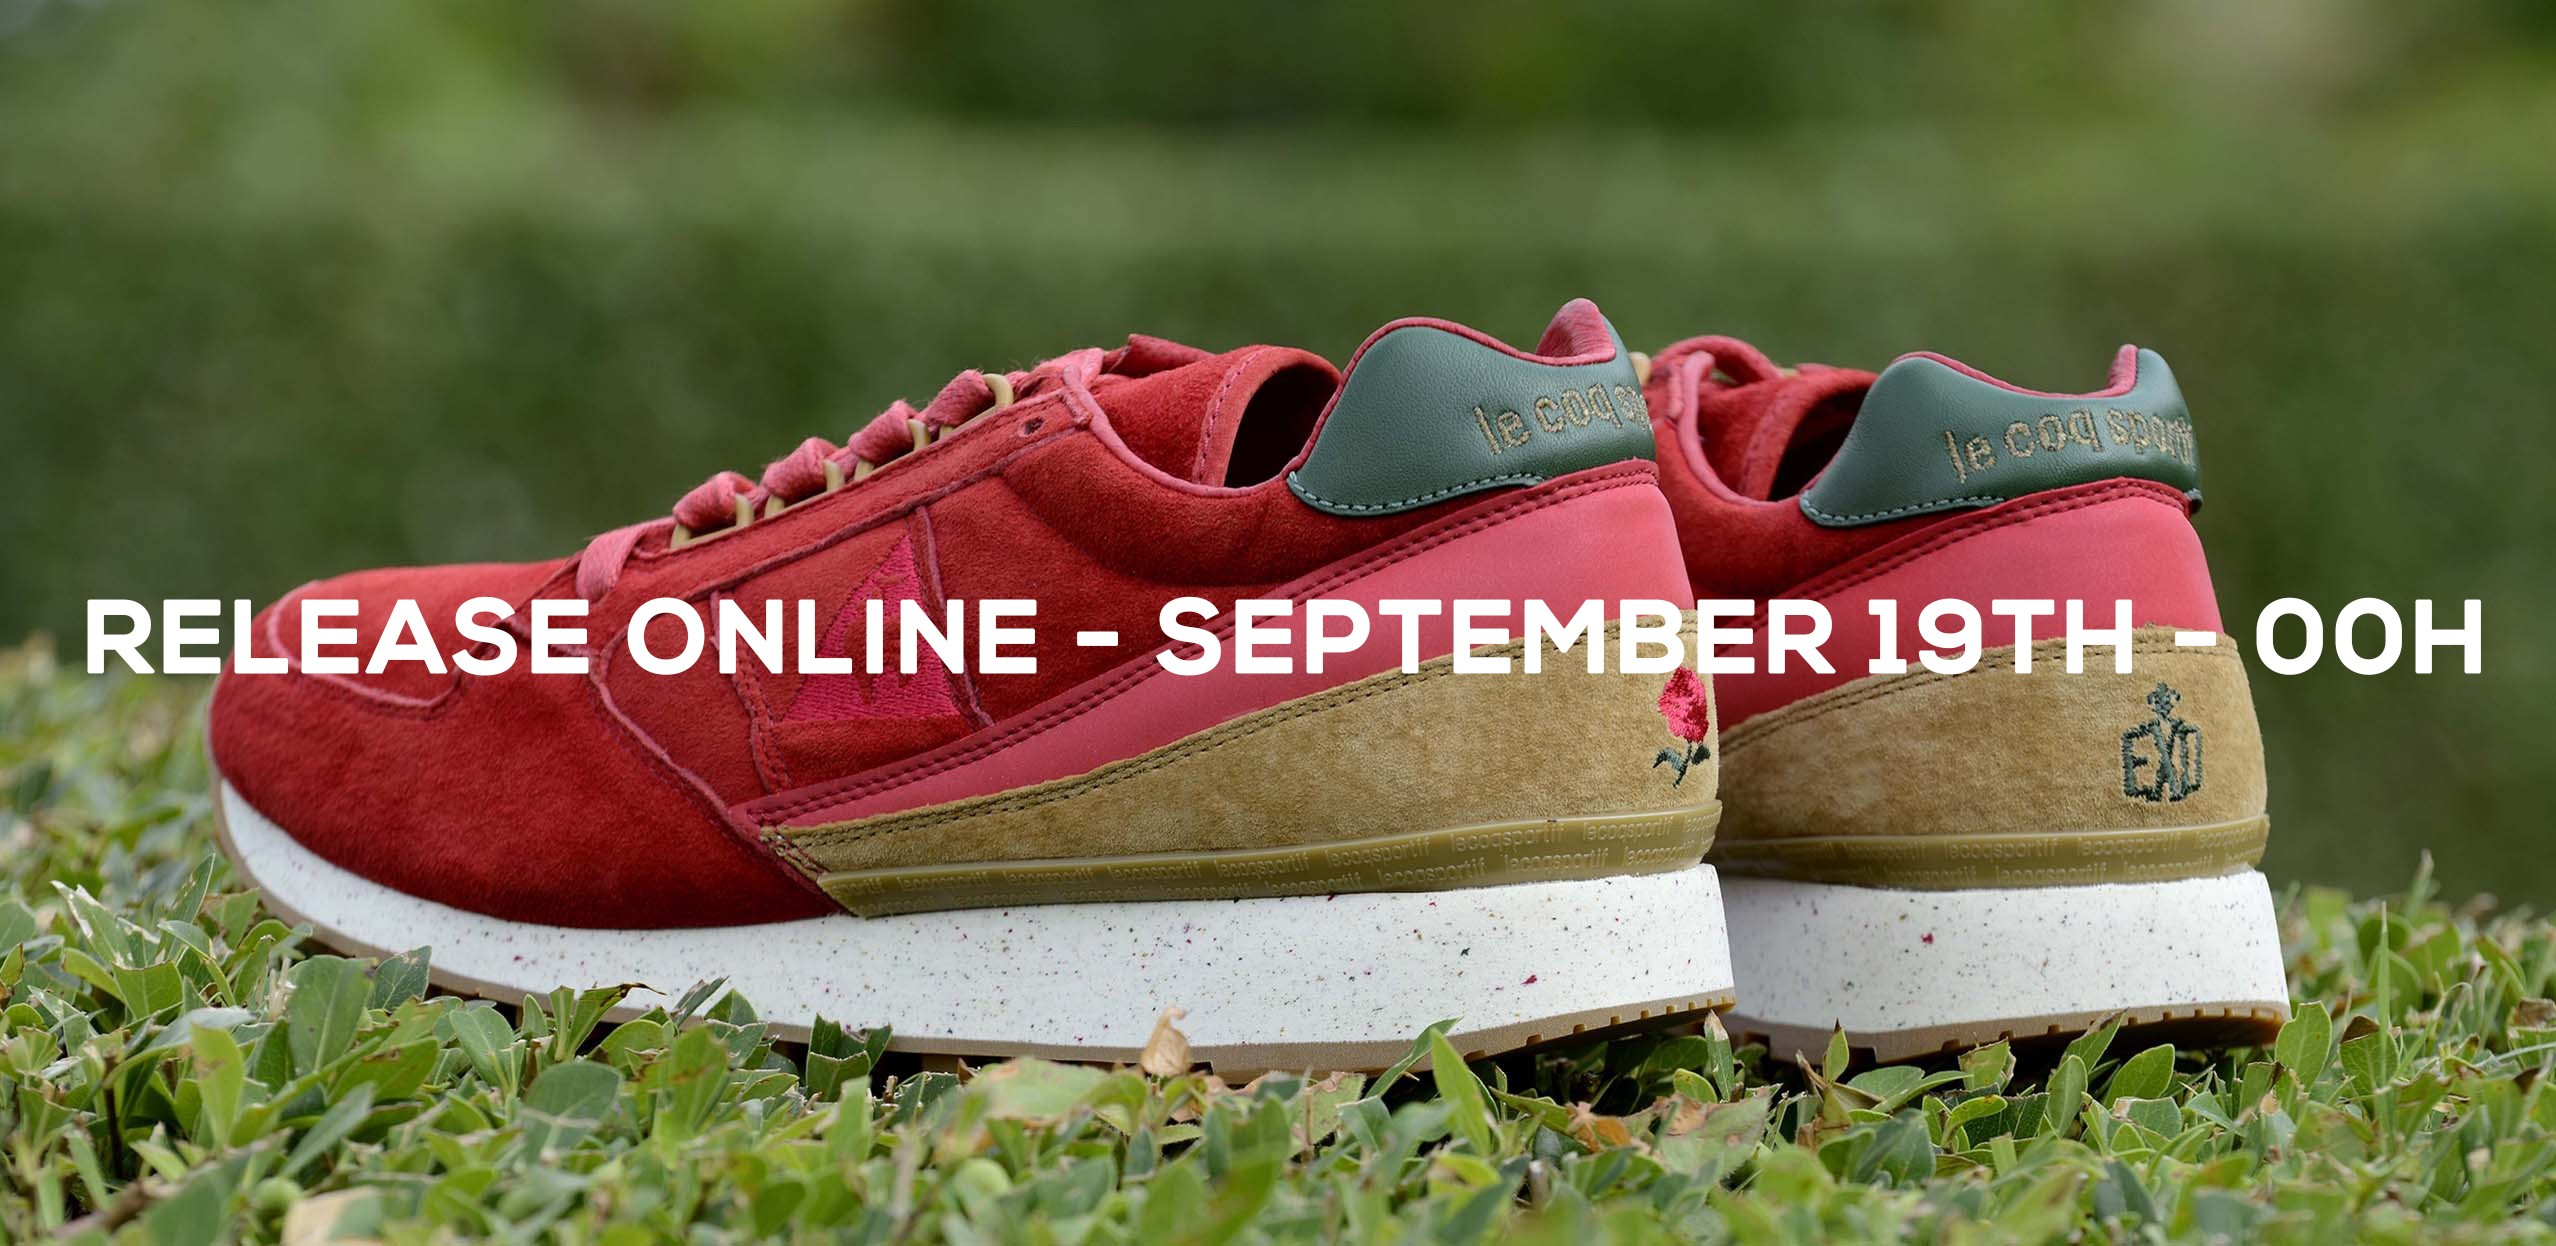 Le Coq Sportif X Limited Editions